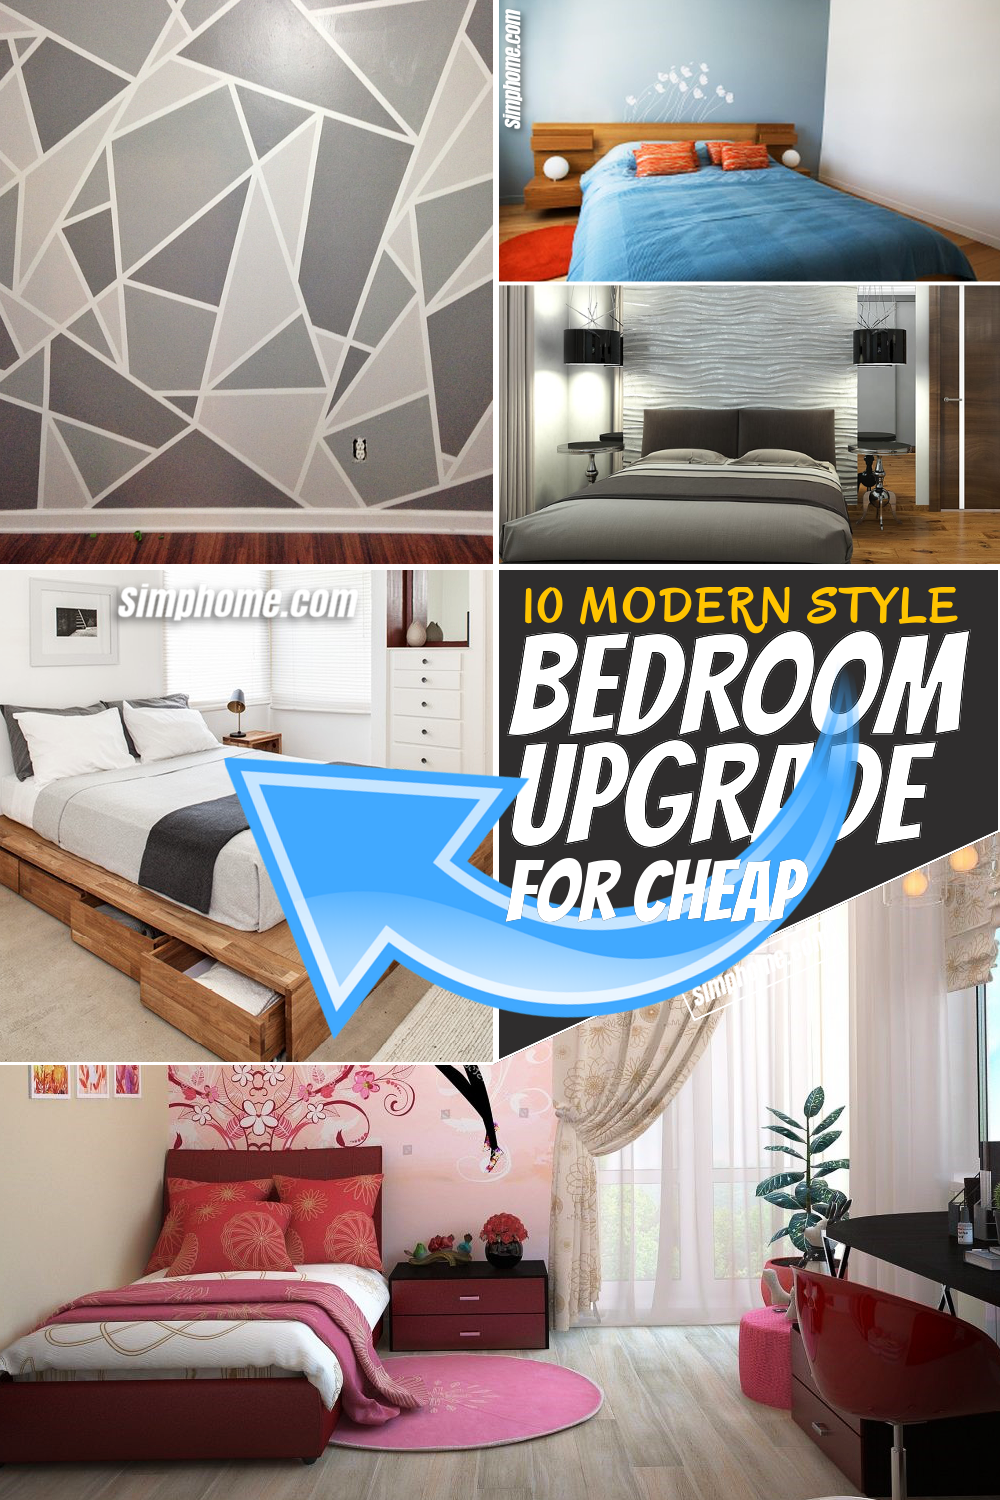 SIMPHOME.COM 10 Modern Style Bedroom Upgrade for Cheap Featured Pinterest Image